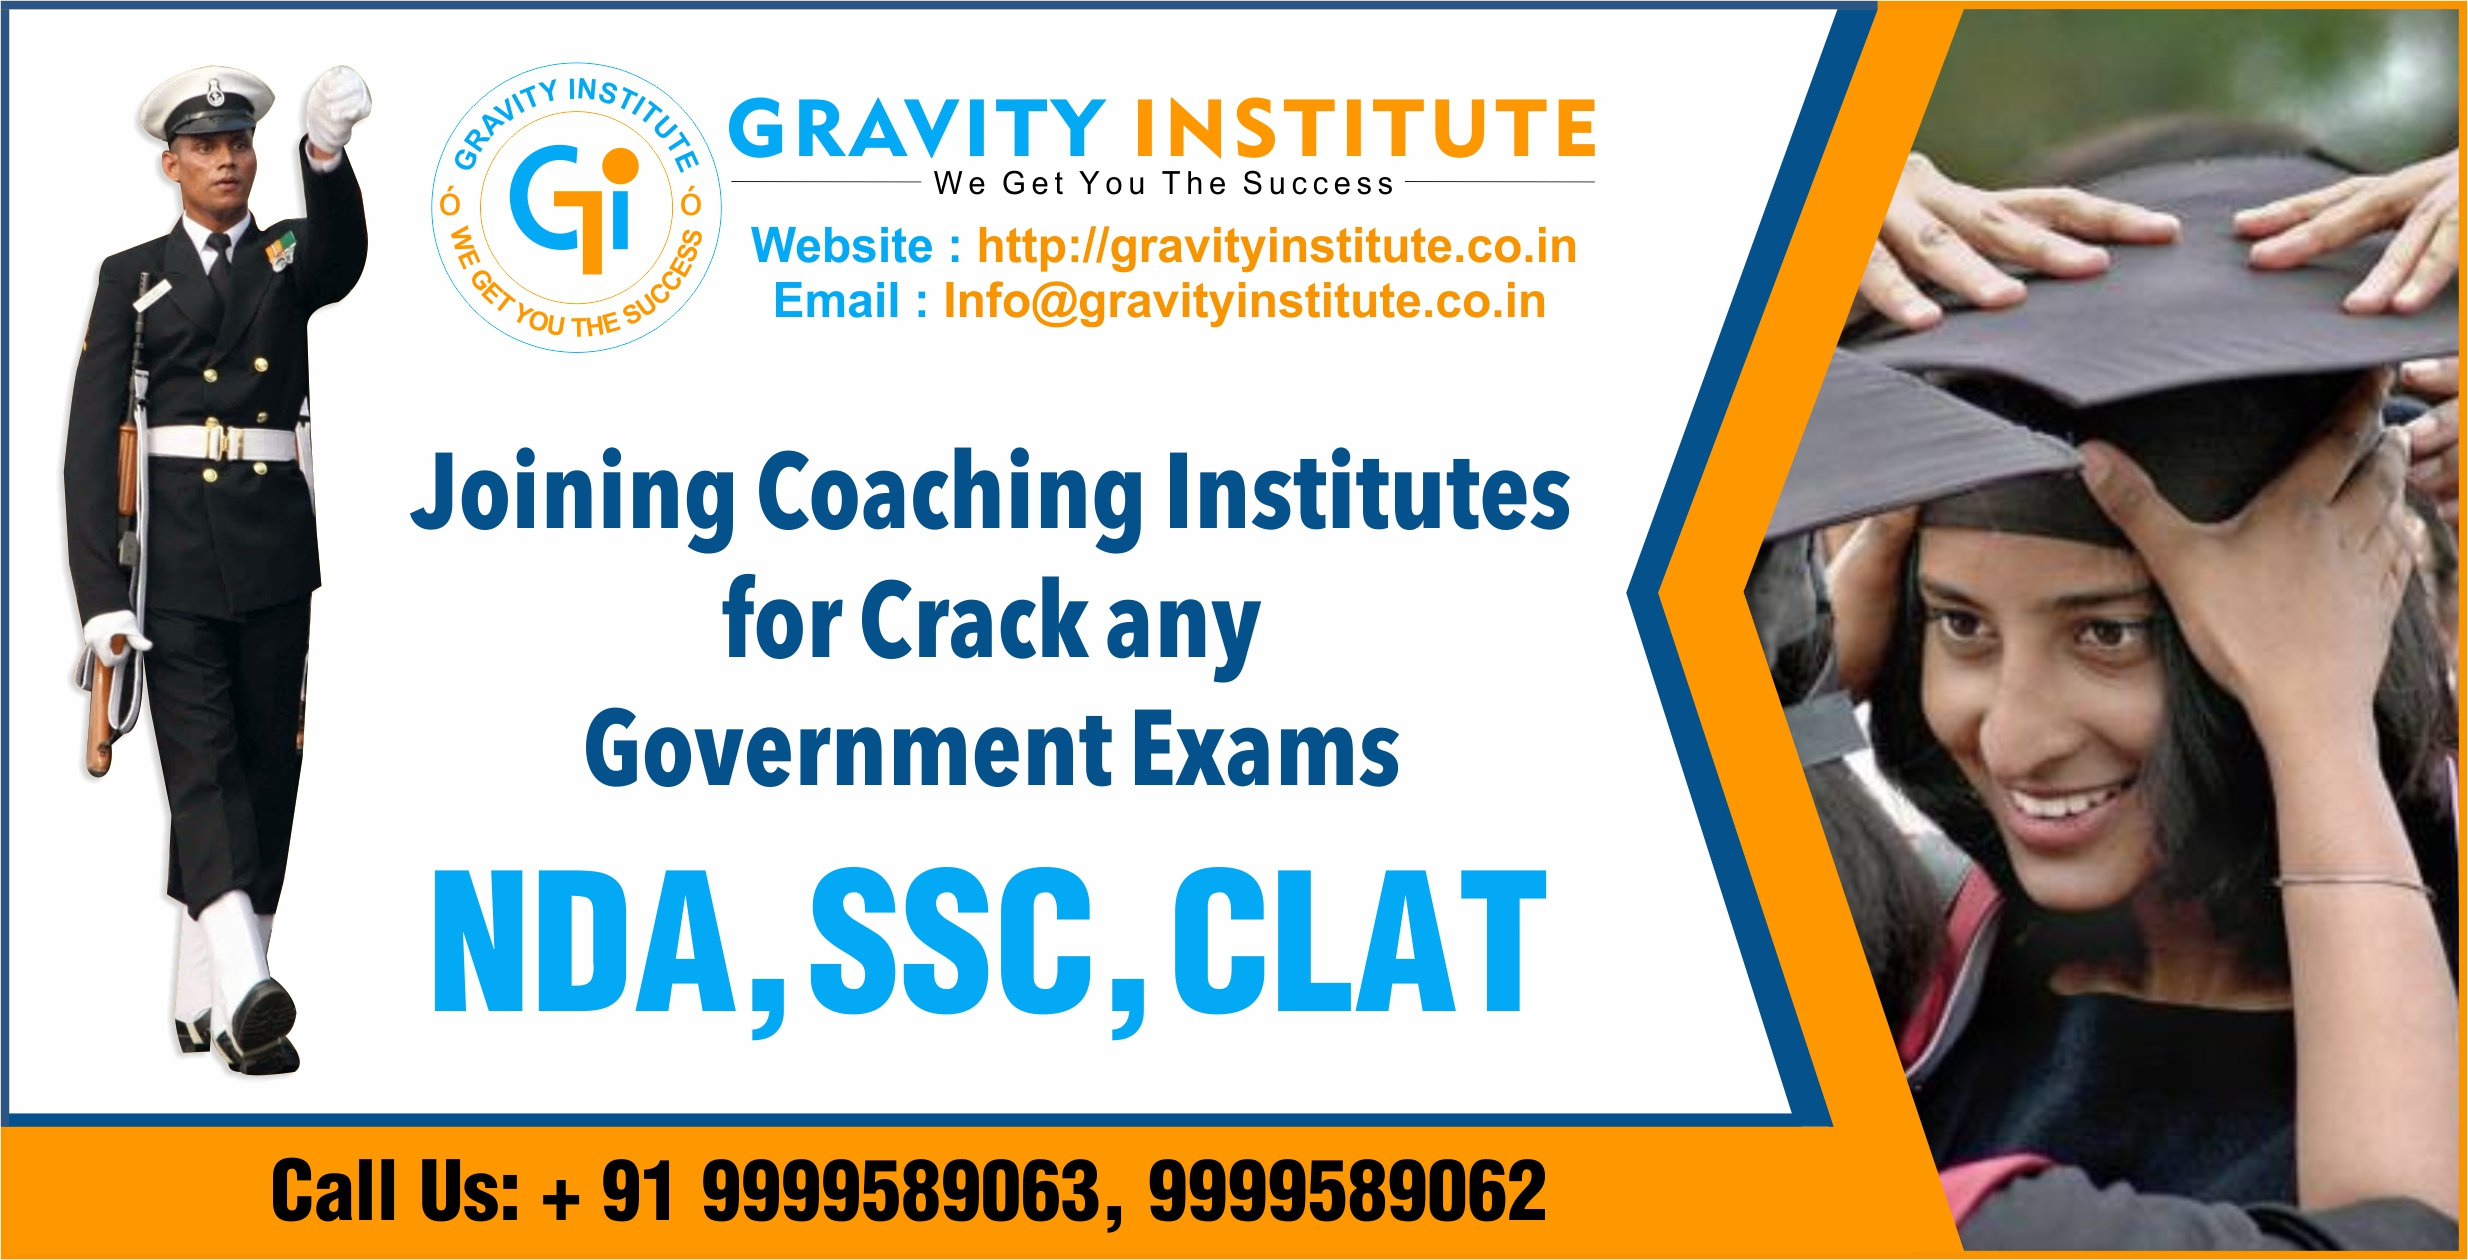 Joining Coaching Institutes for Crack any Government Exams